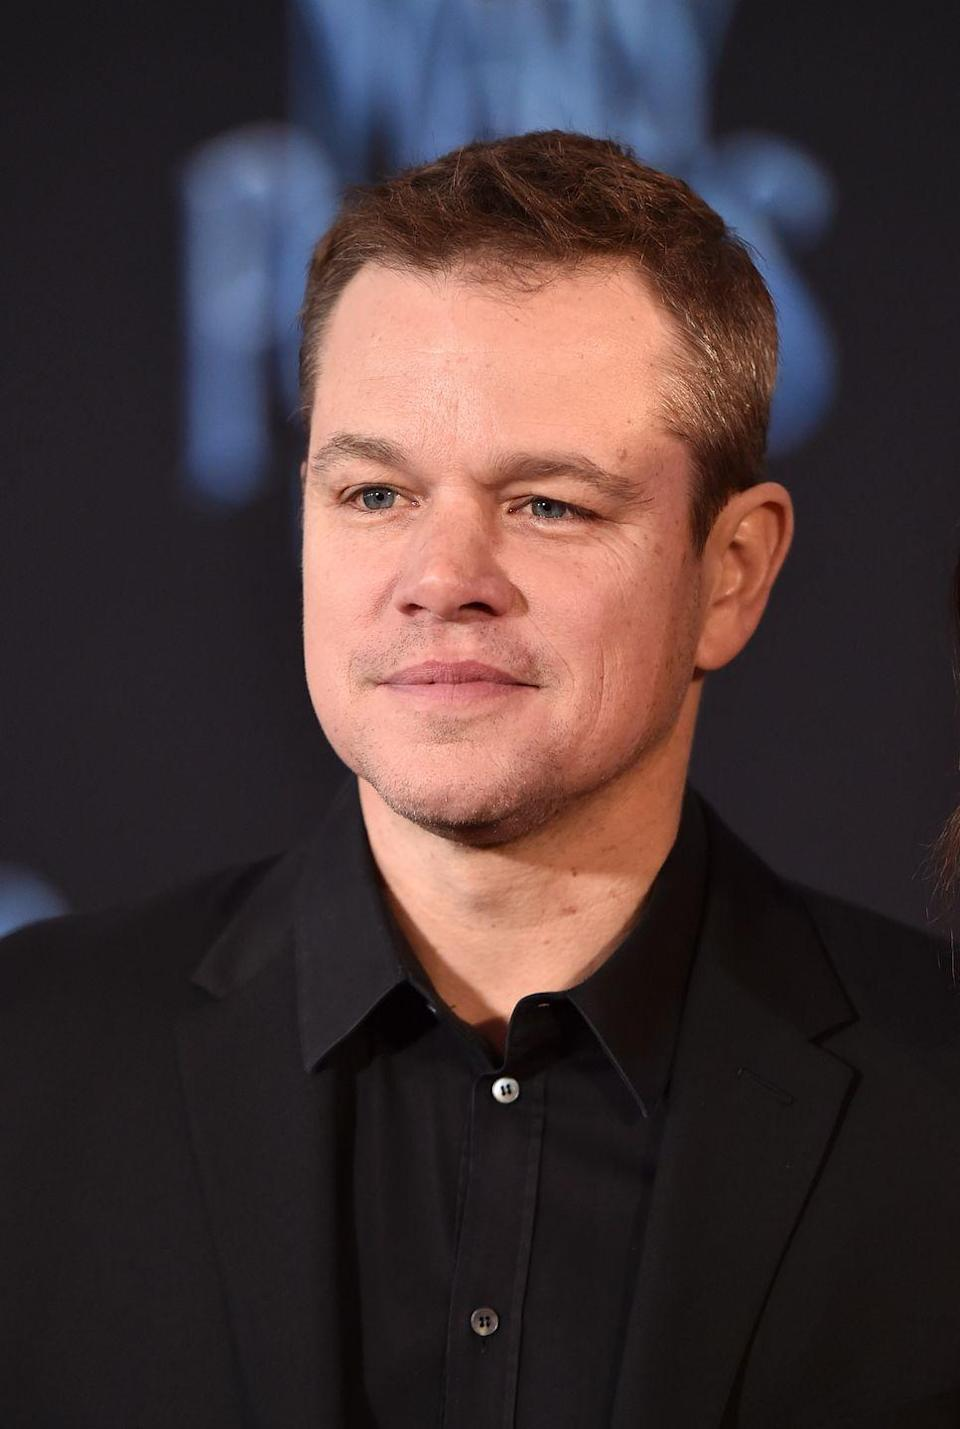 <p>I mean we all know what Matt Damon currently looks like, right? He's still famous! He's in everything! He's everywhere! Moving on!</p>